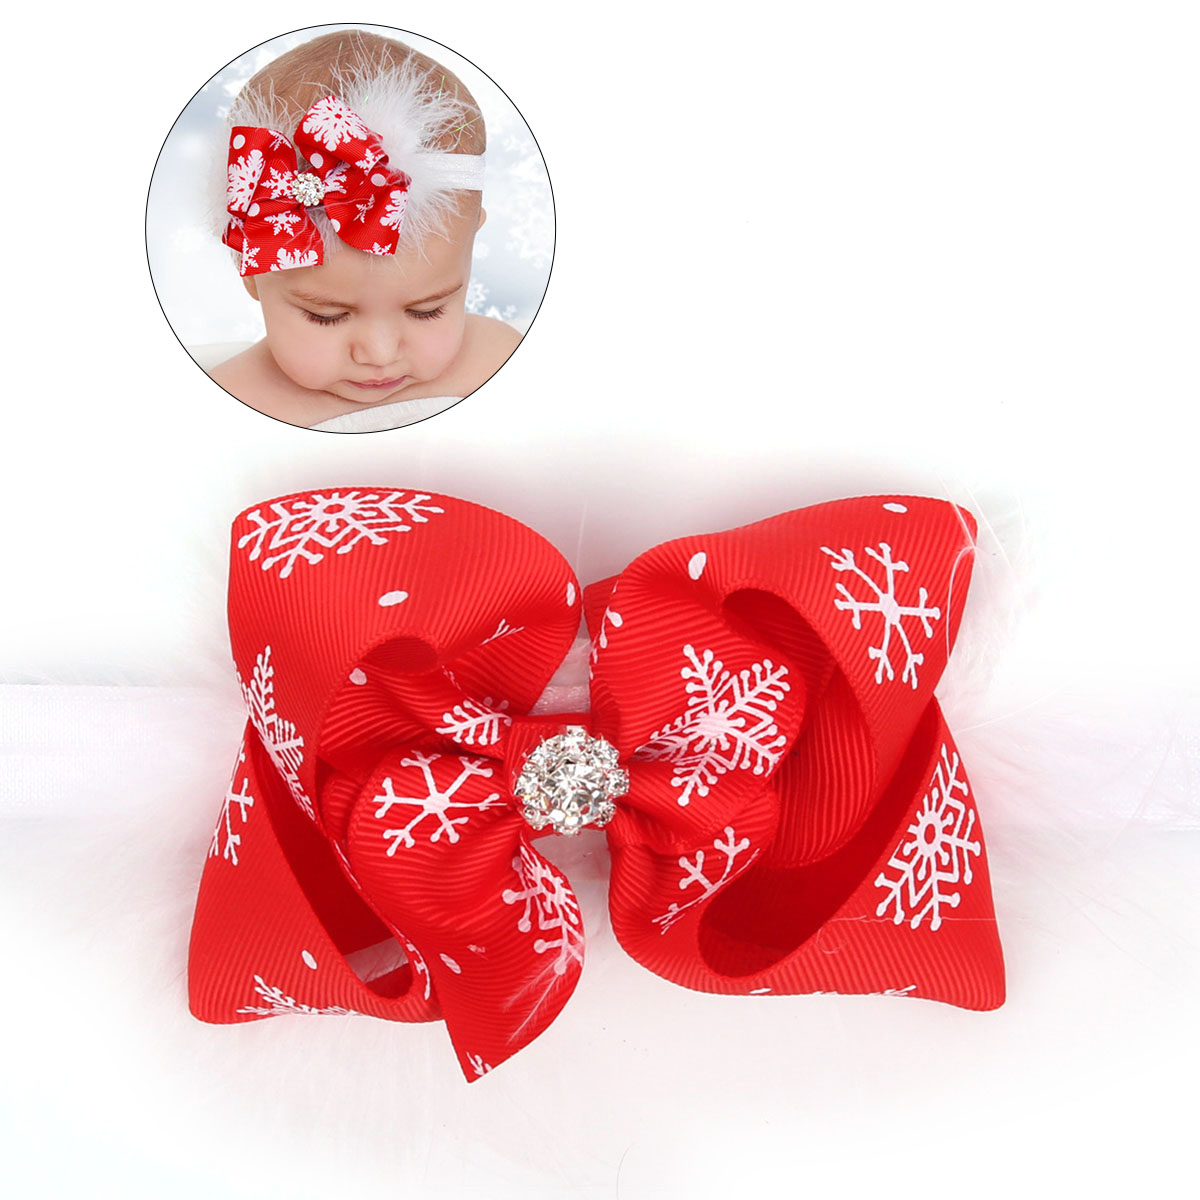 Christmas Headband For Baby Girl.Us 1 13 45 Off 1pc Baby Girl Christmas Headband Newborn Infant Feather Bowknot Hair Band Headwear Accessories In Christmas Headbands From Home